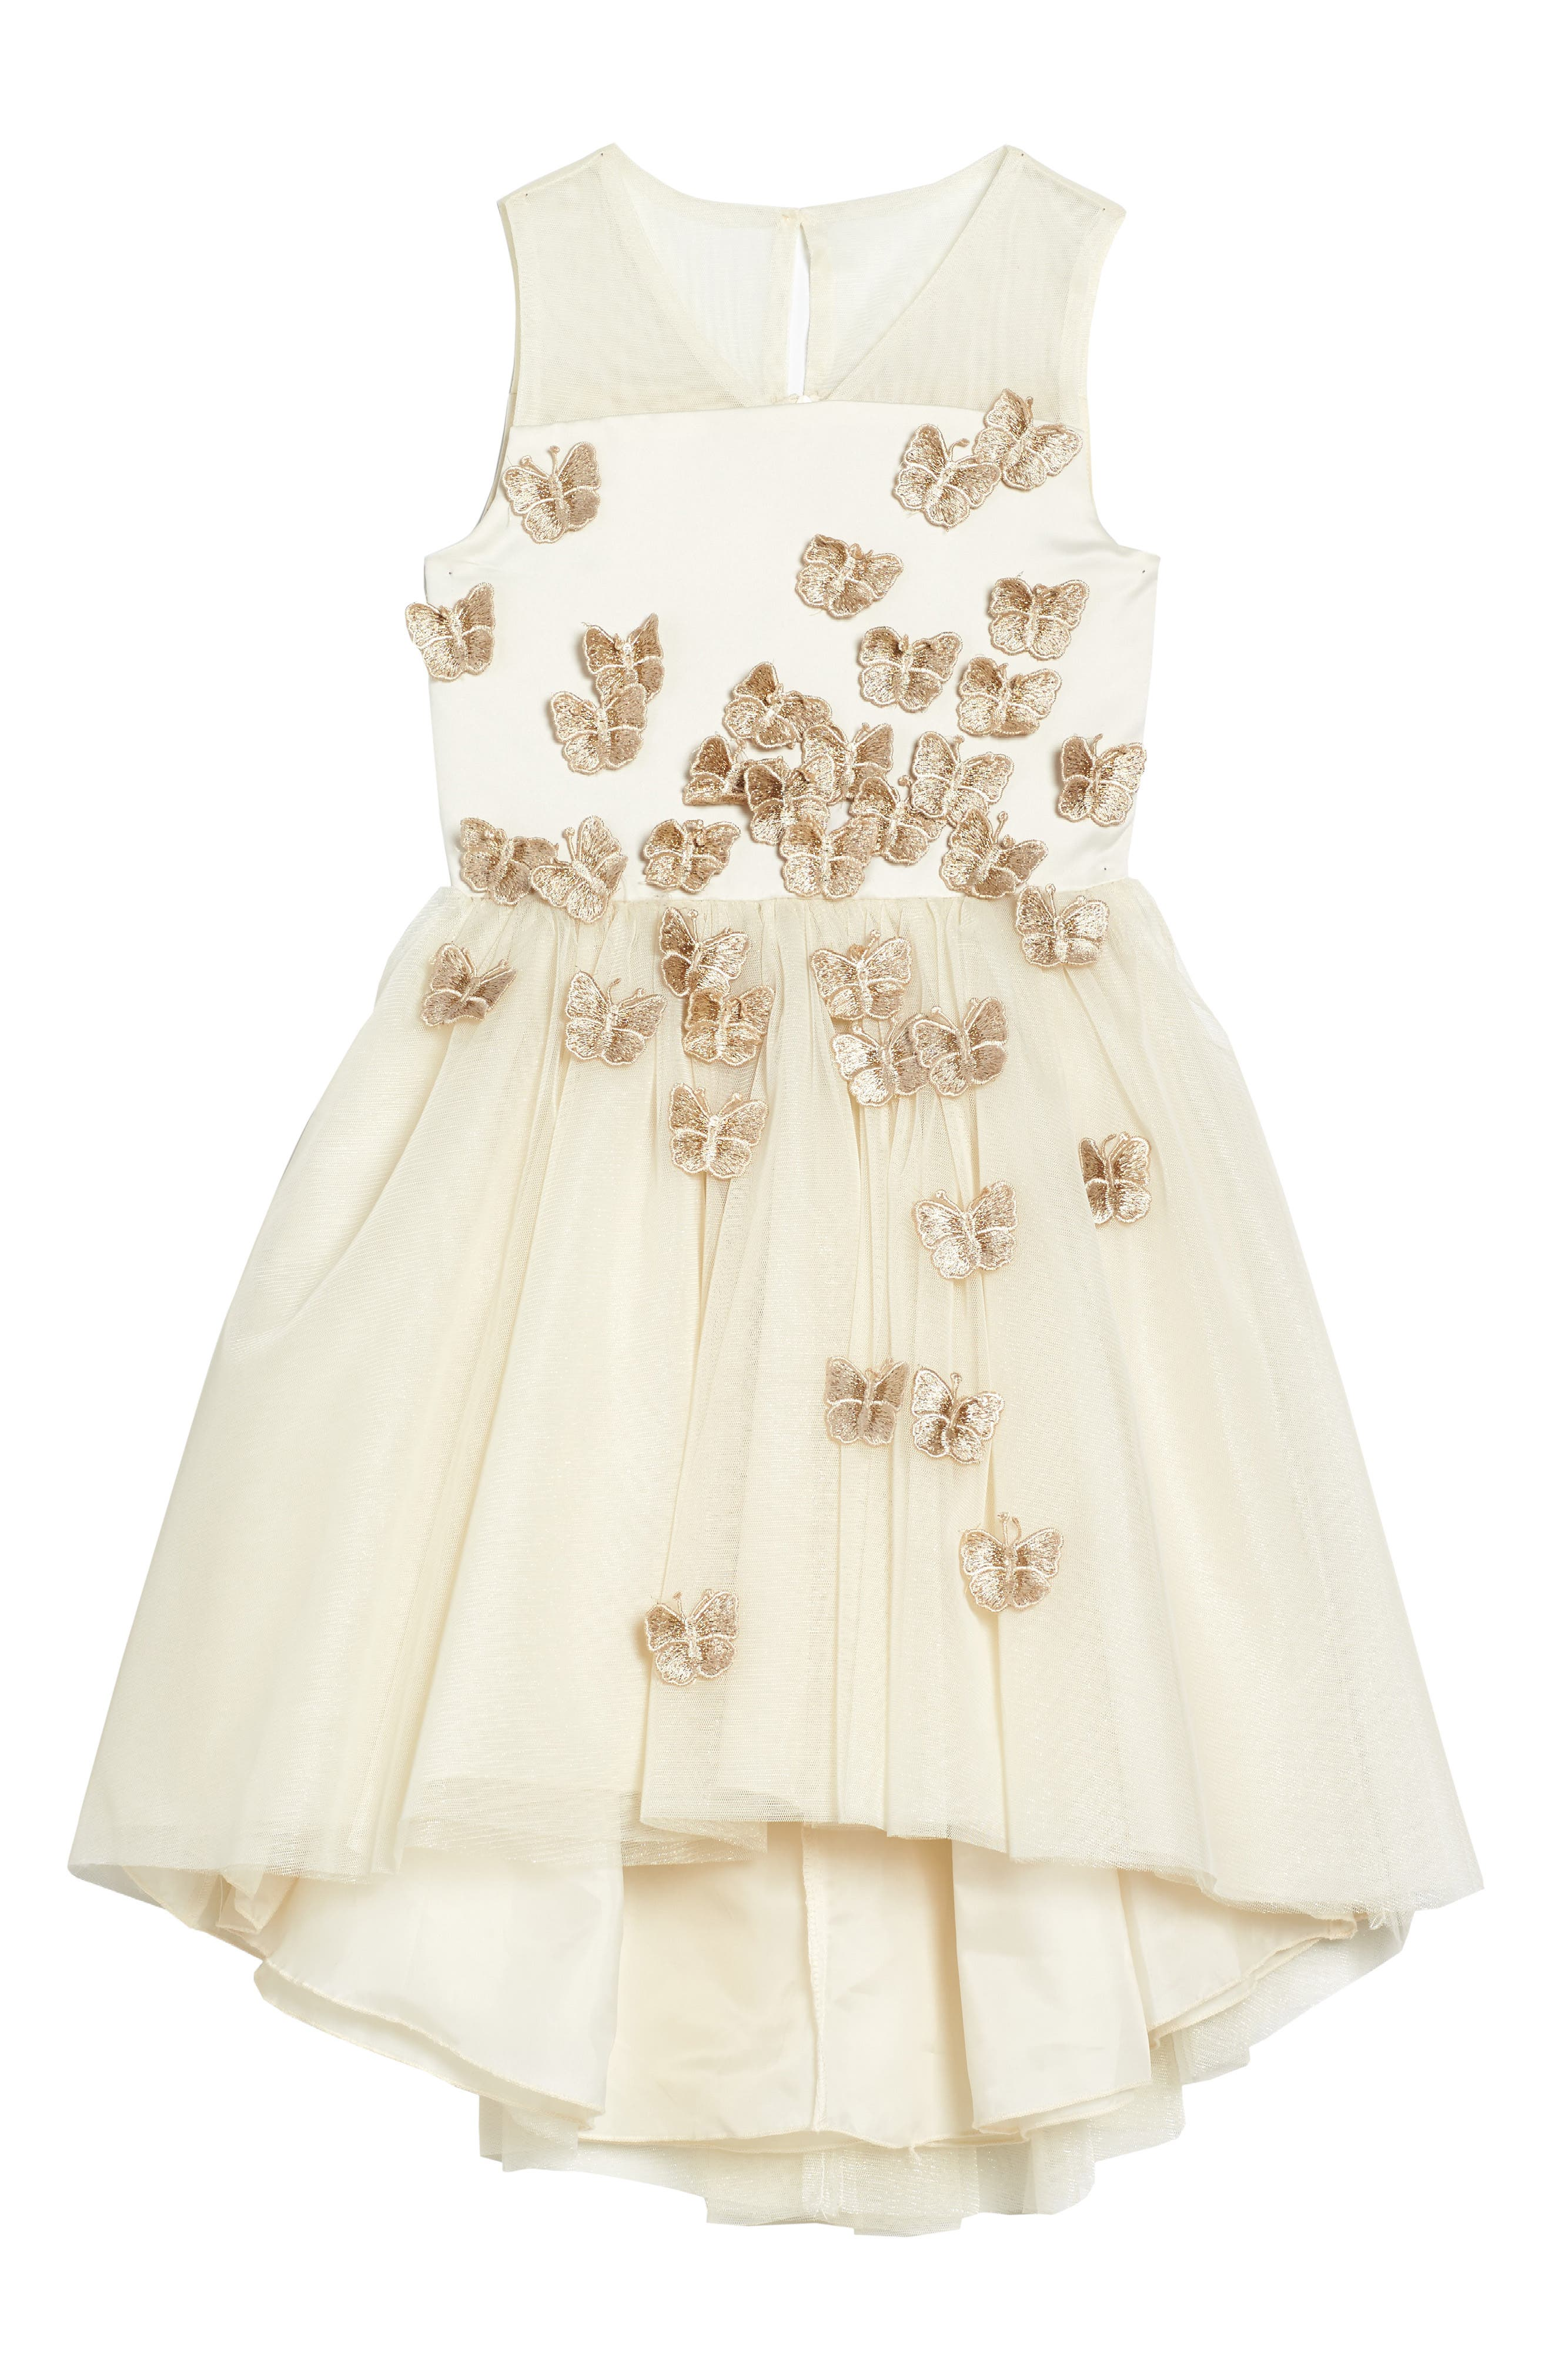 Nanette Lapore Butterfly Dress,                         Main,                         color, Cream